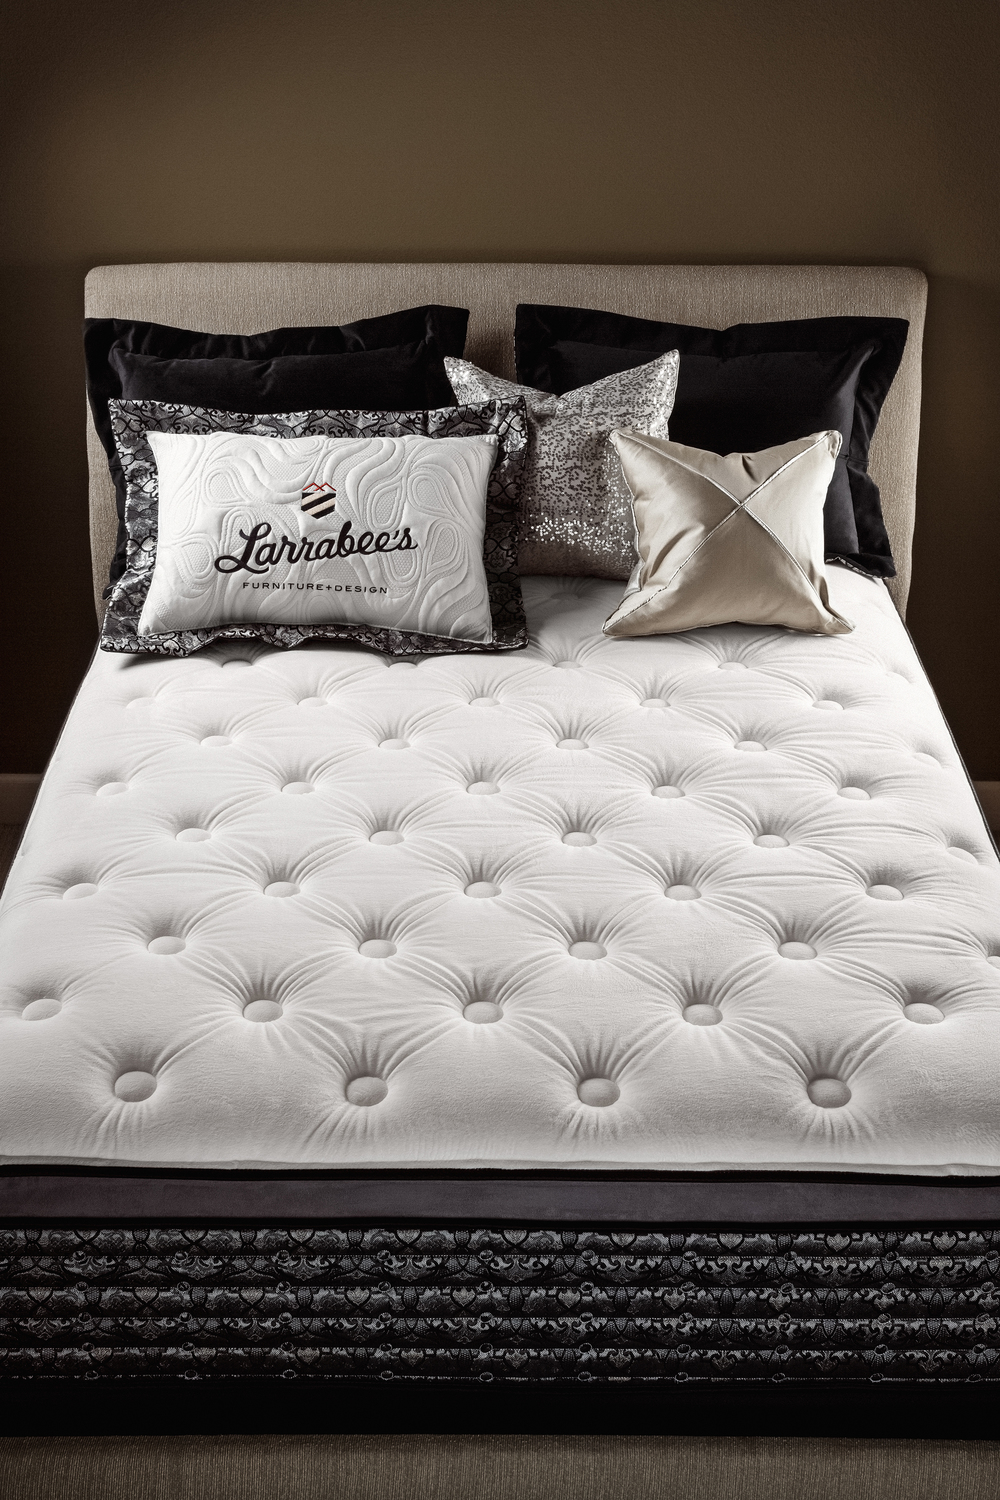 Larrabees_Select_Mattress